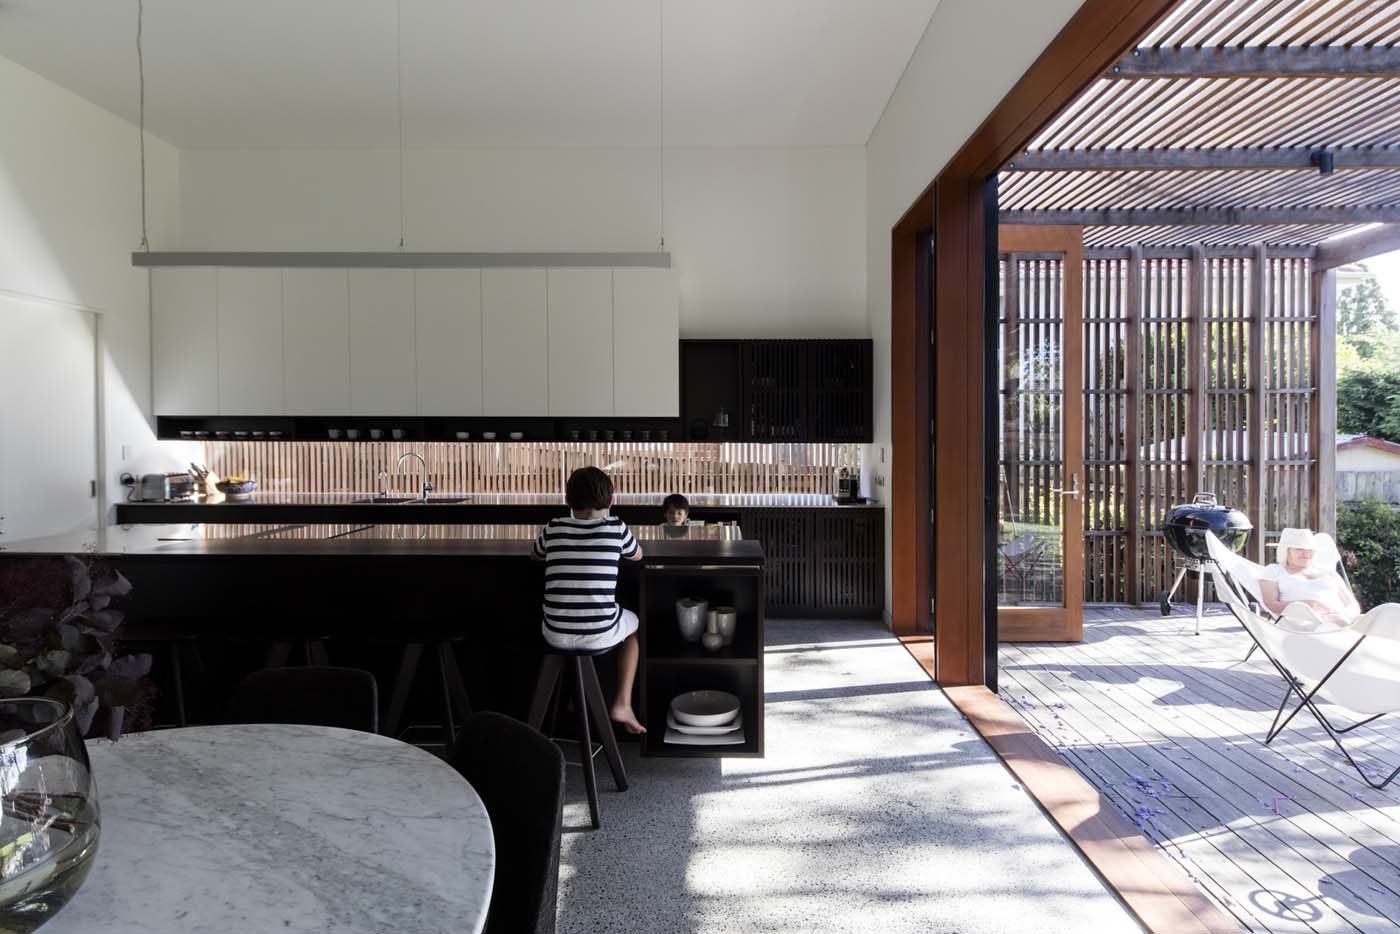 Sung Dobson house by Sam Crawford Architects, Sydney. Kitchen in dark stained timber, white and stainless steel.